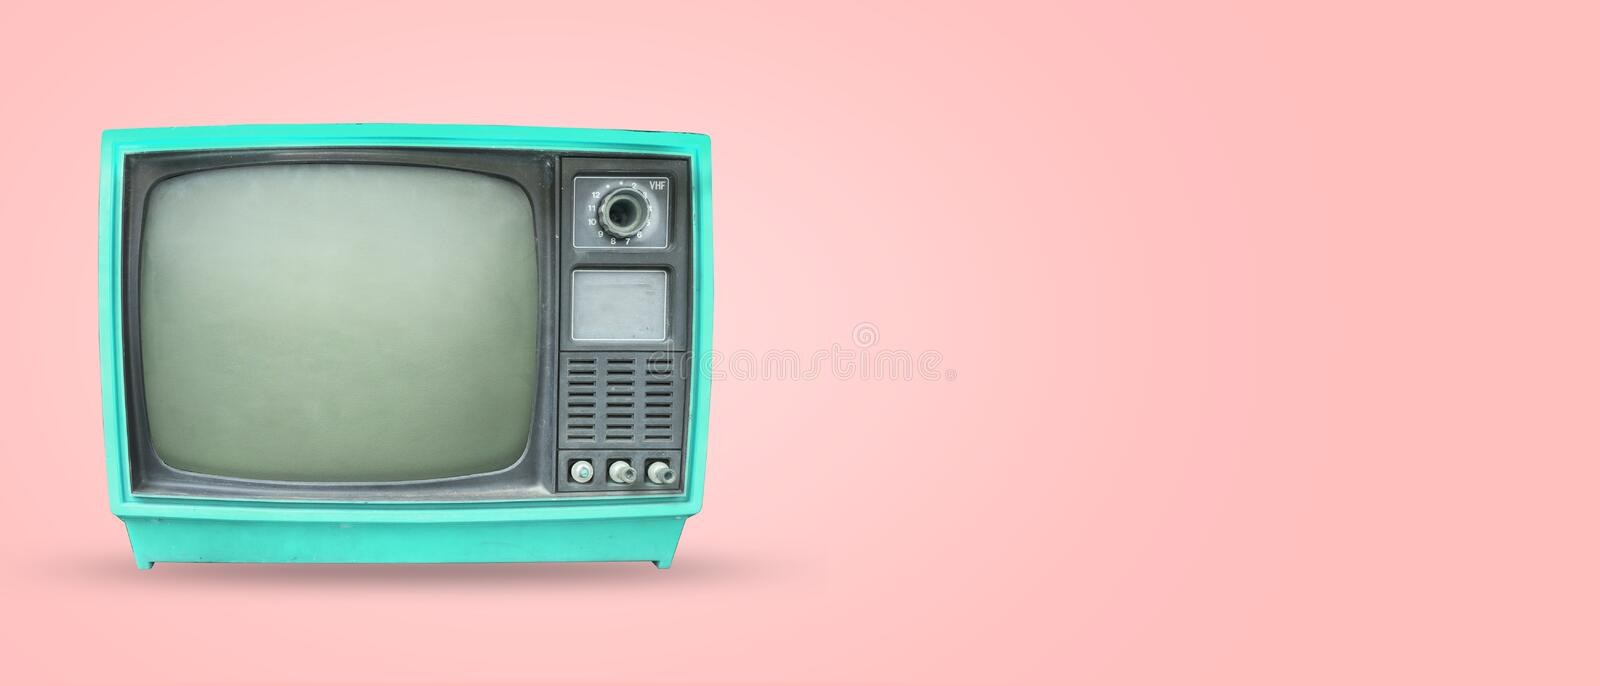 Old vintage tv on pastel color background. Retro television - old vintage tv on pastel color background. retro technology. flat lay, top view hero header royalty free stock photos